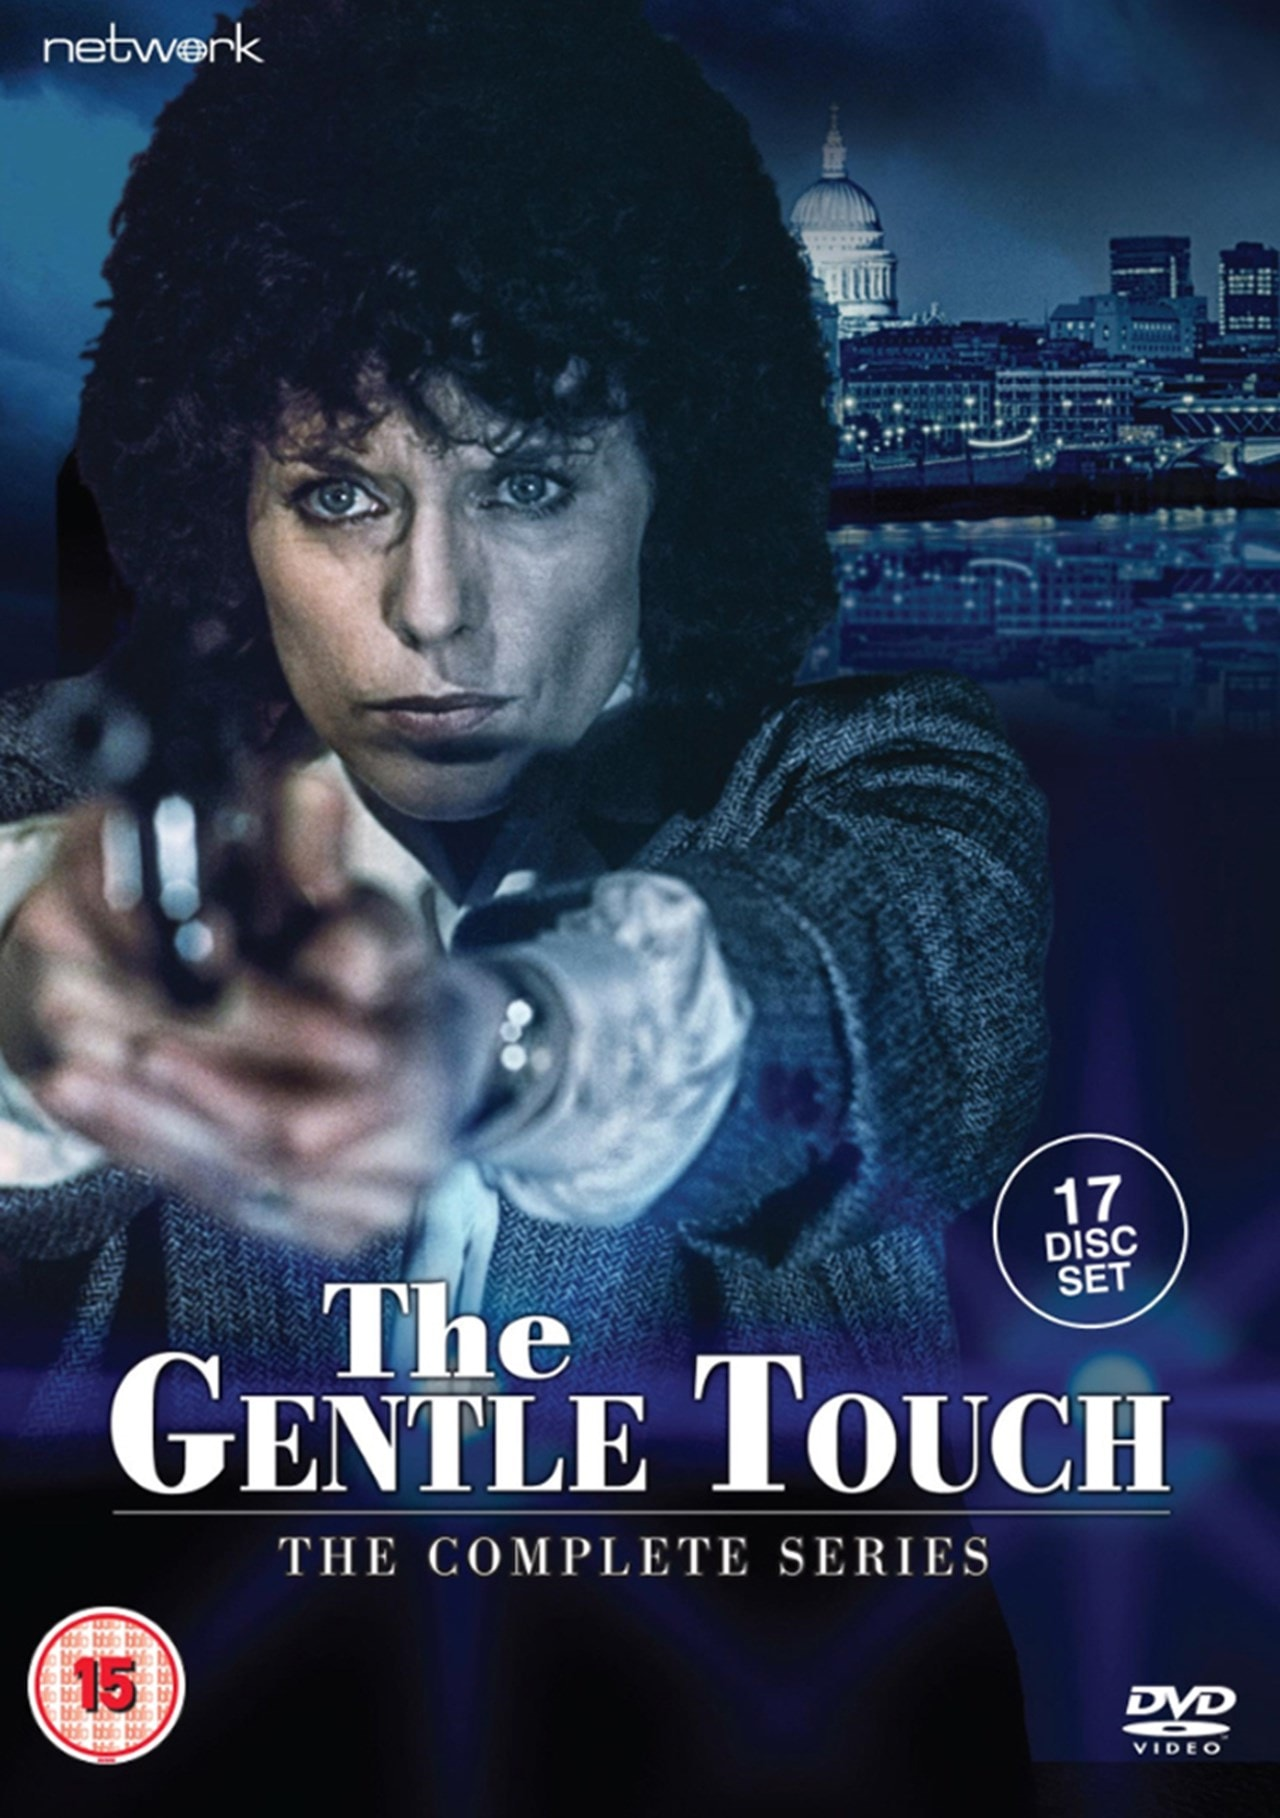 The Gentle Touch: The Complete Series - 1